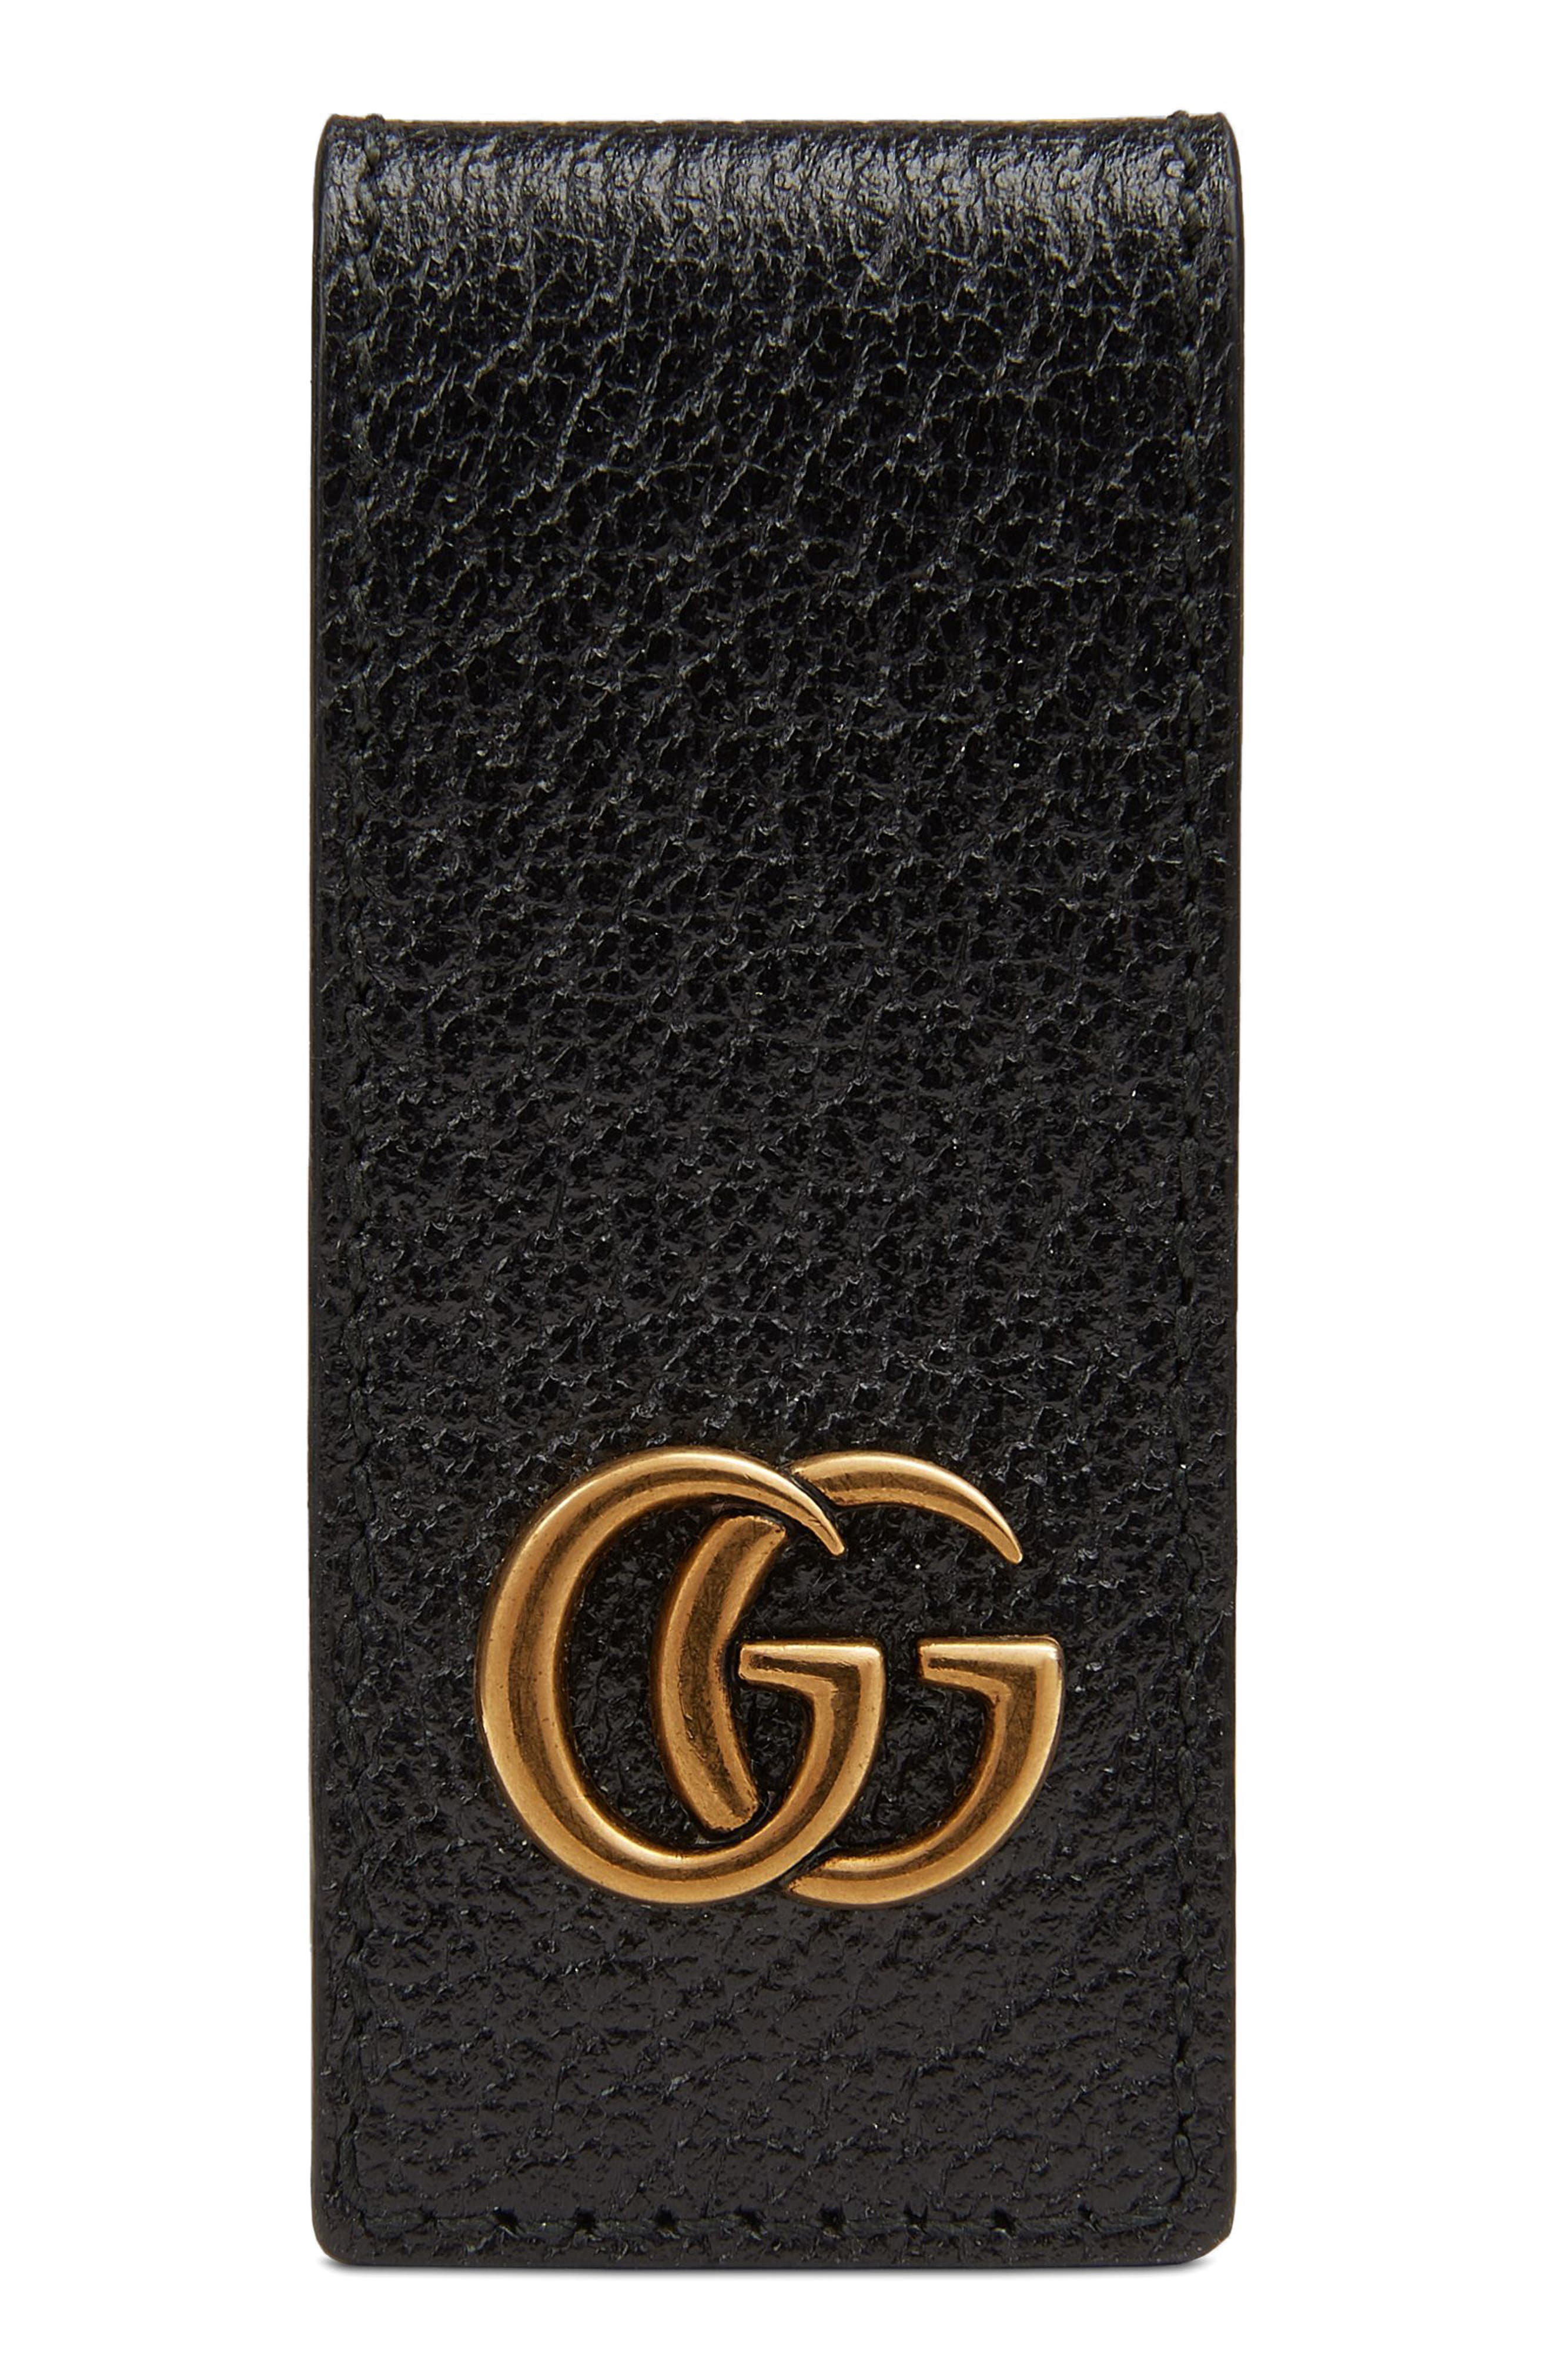 GG Marmont Money Clip,                             Main thumbnail 1, color,                             001